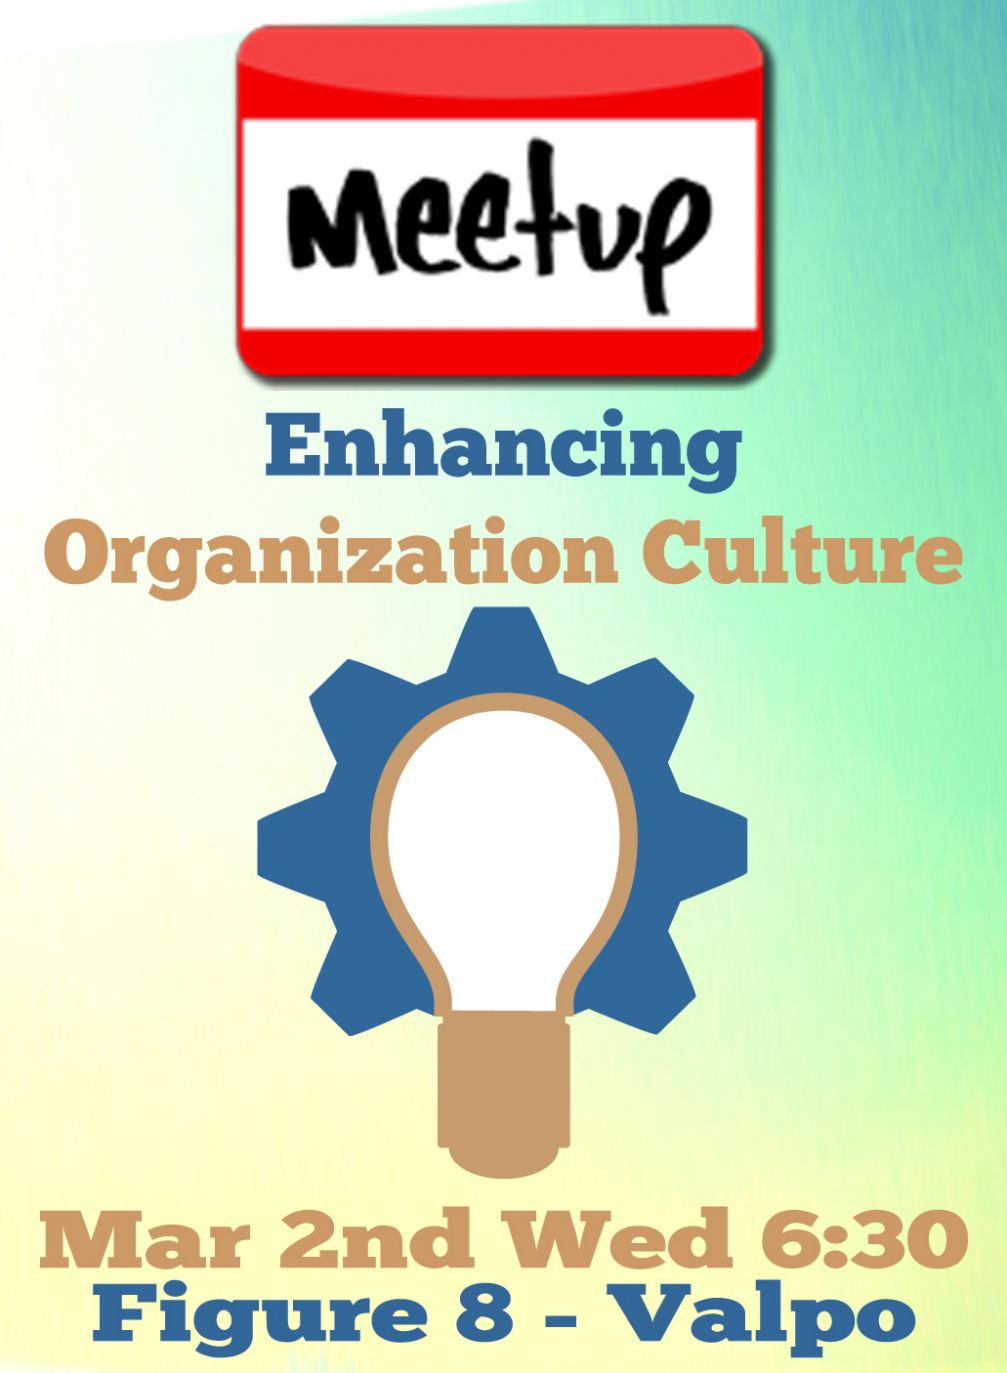 Learn to enhance organizational culture with us